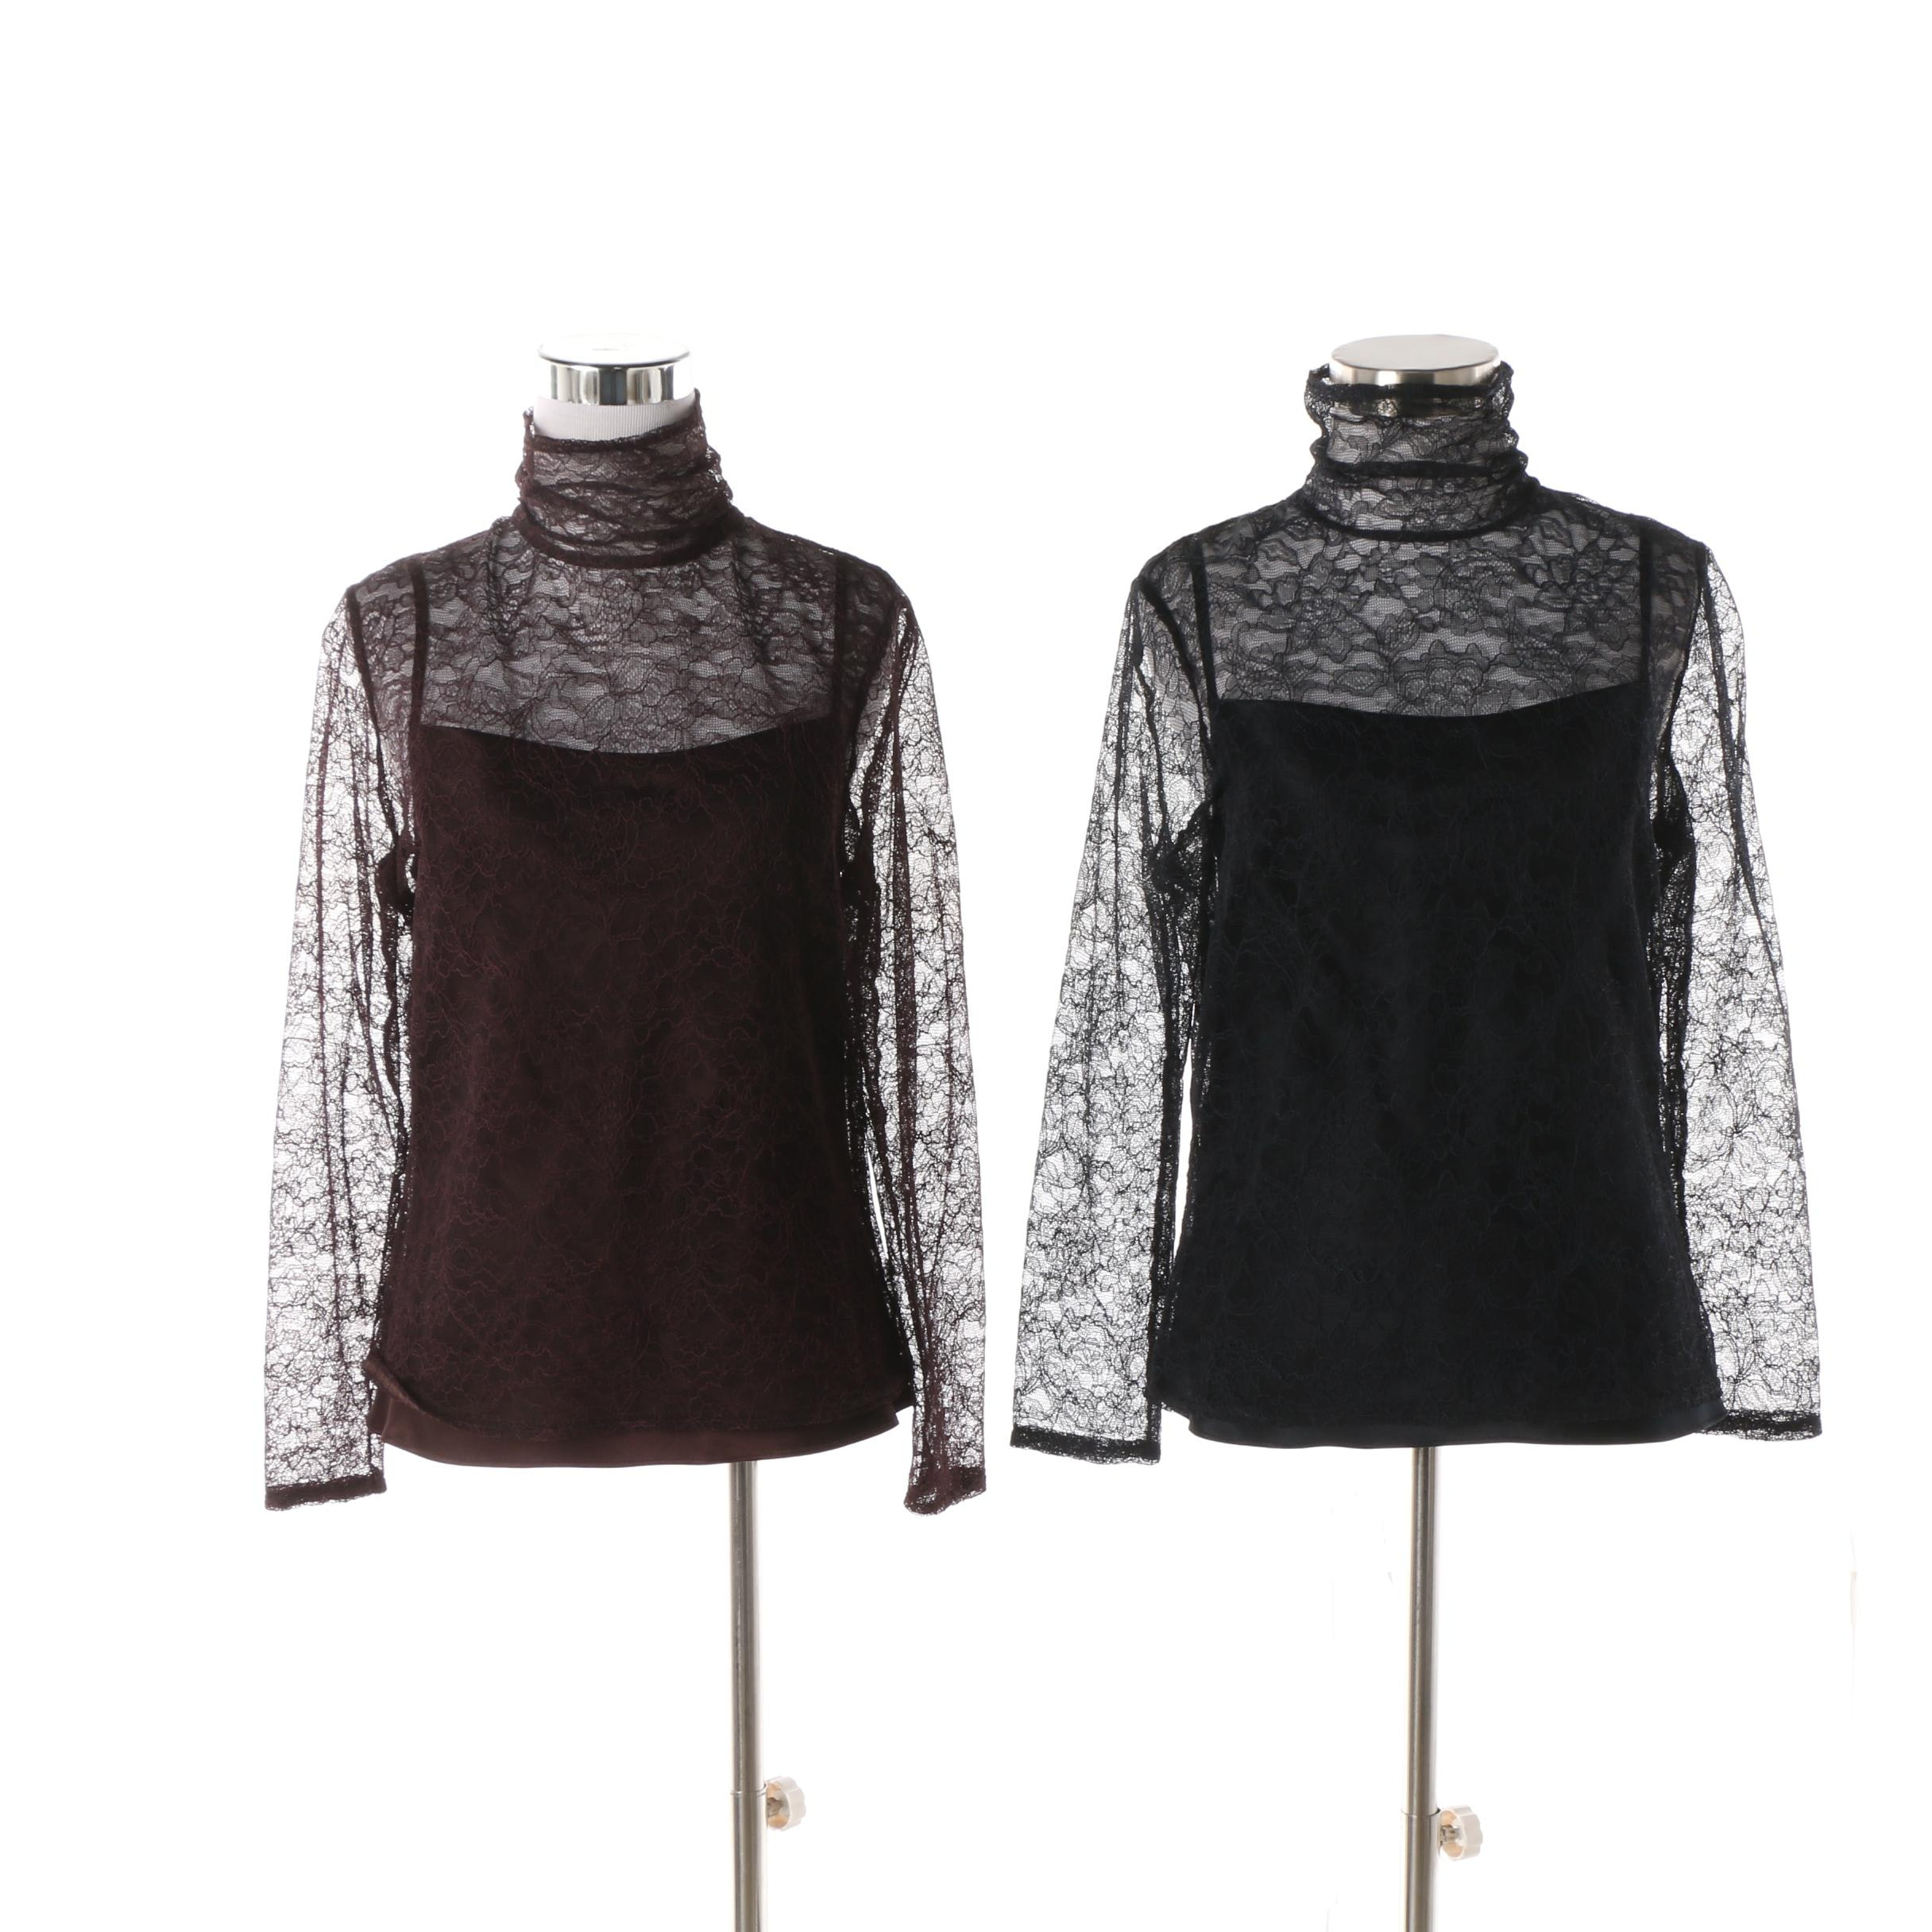 Worth Burgundy and Black Sheer Lace Turtleneck Tops with Silk Camisoles